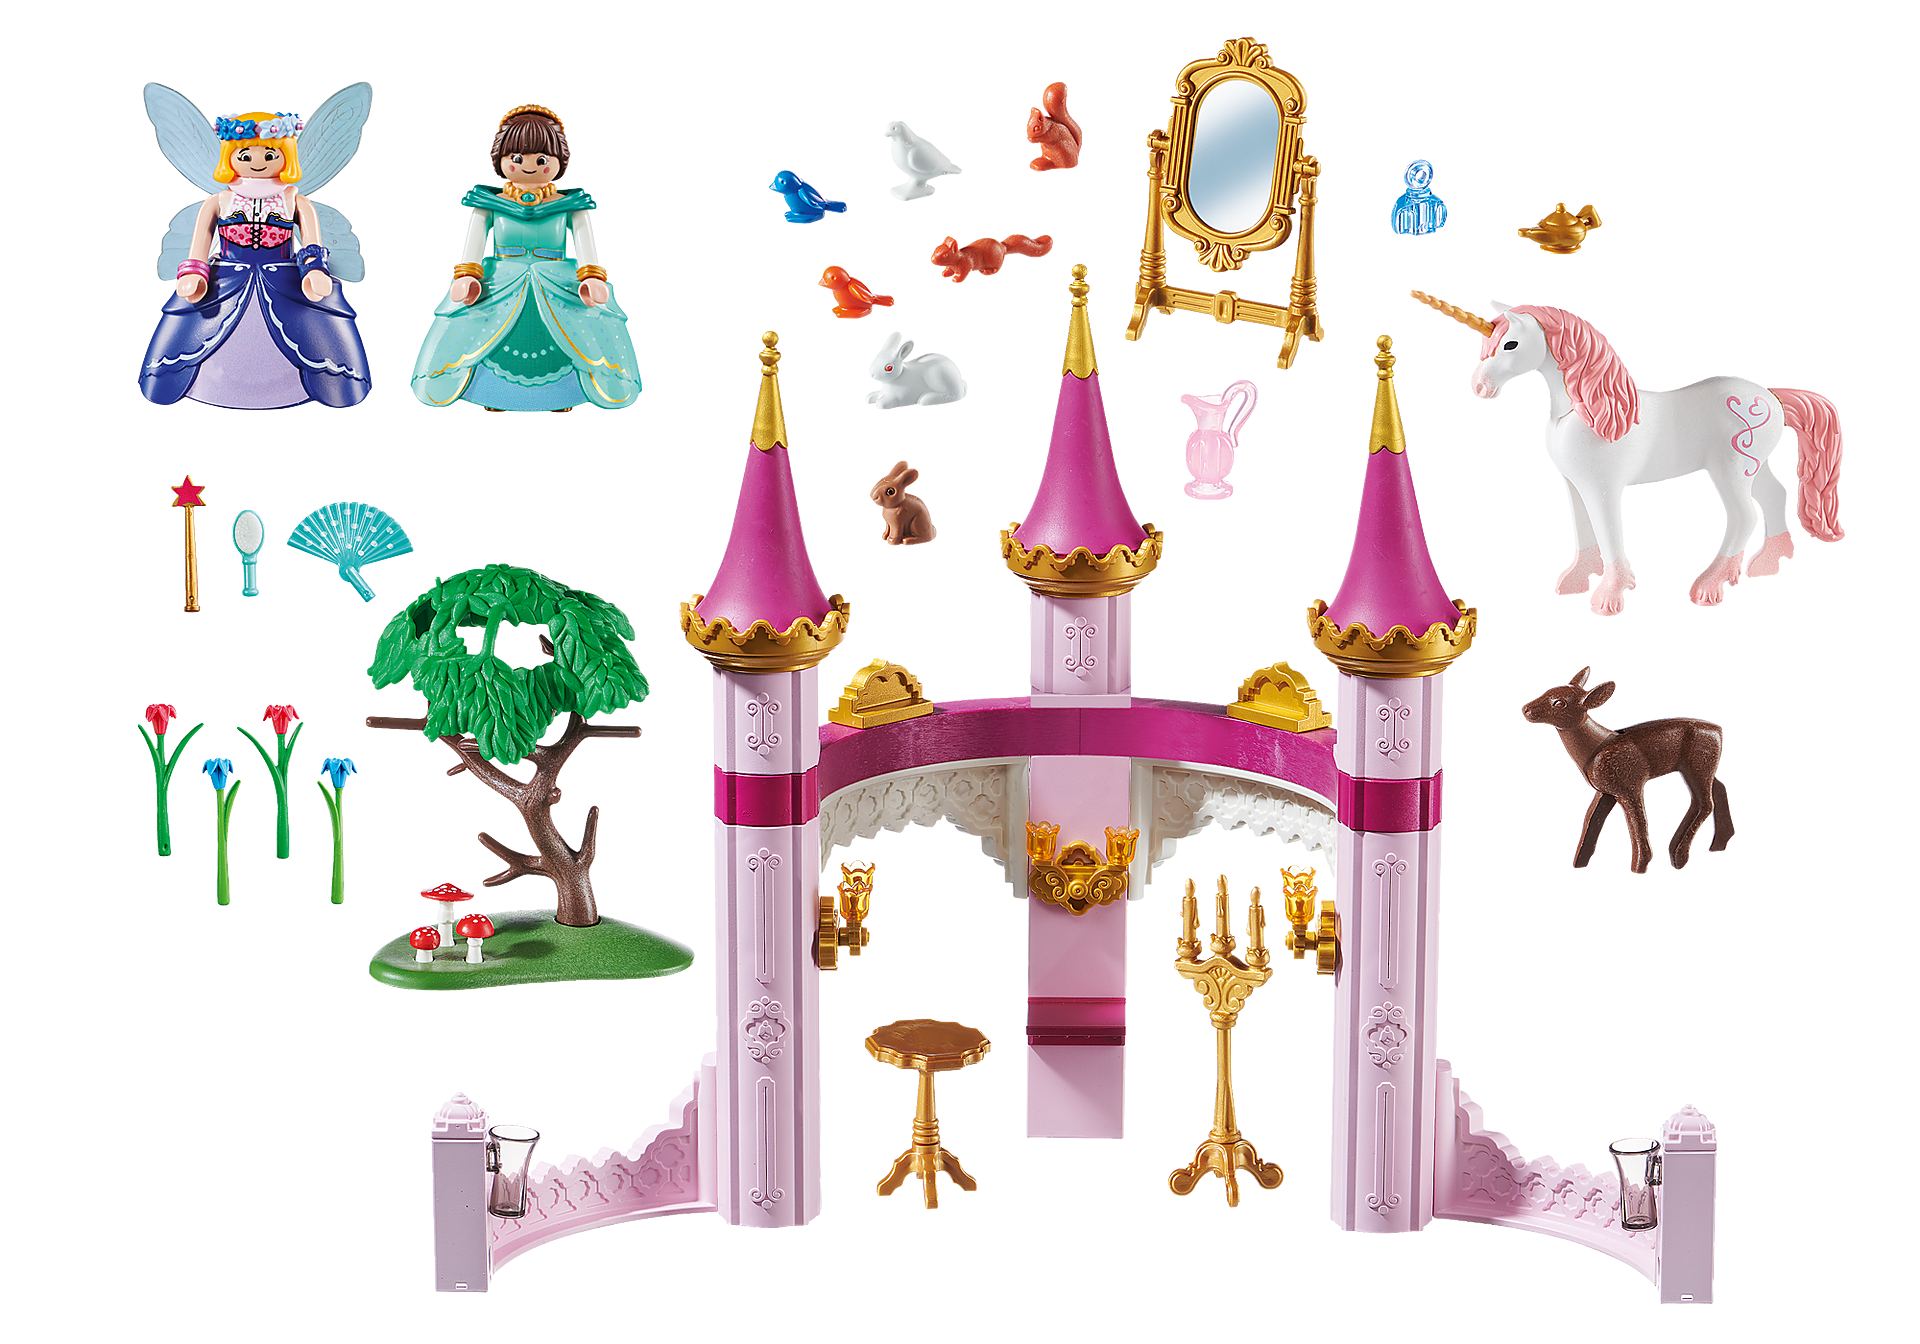 70077 PLAYMOBIL: THE MOVIE Marla in the Fairytale Castle zoom image3